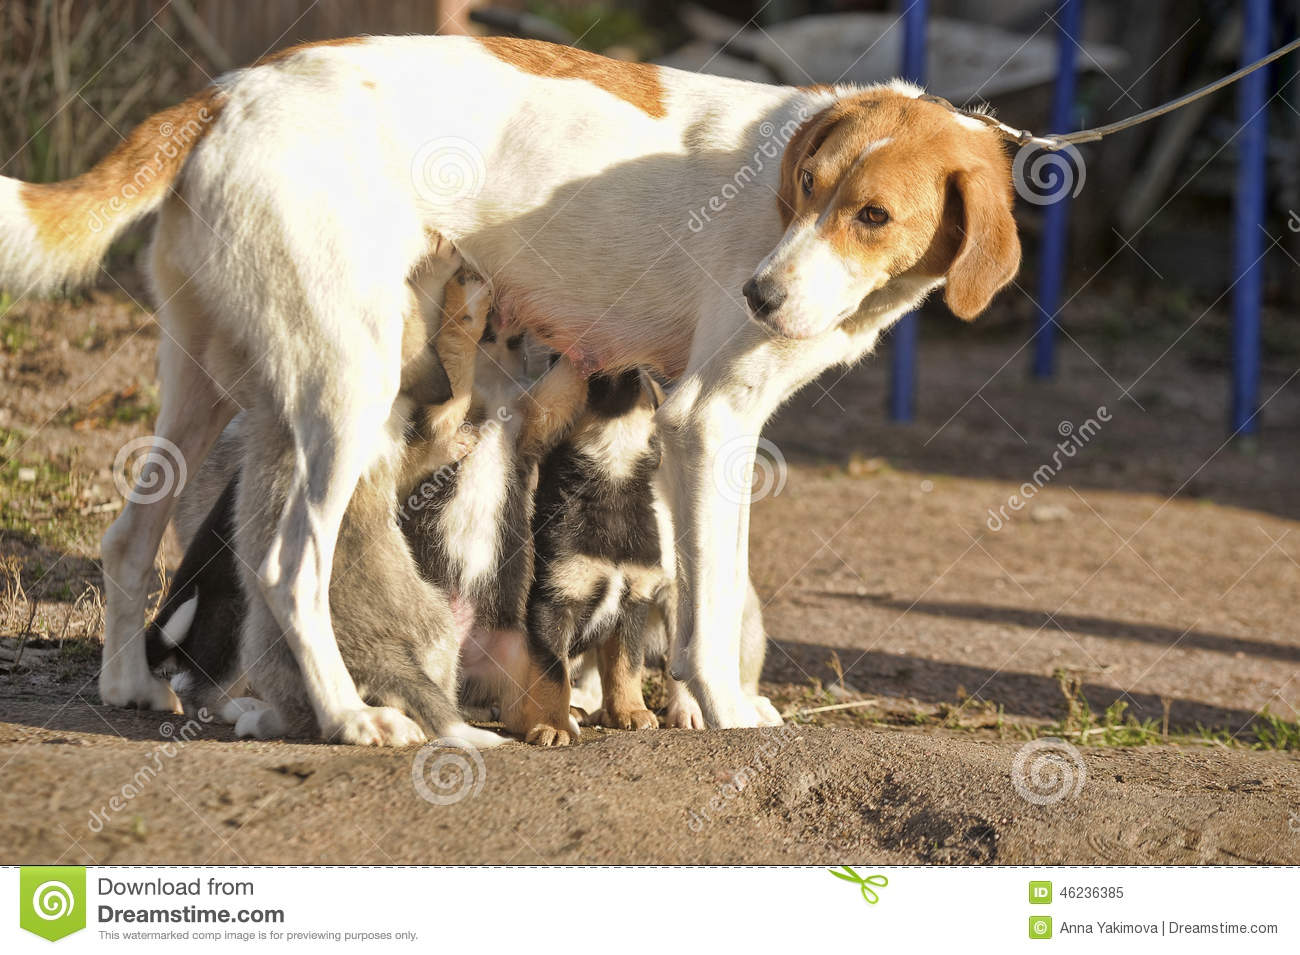 Can Dogs Drink Breast Milk